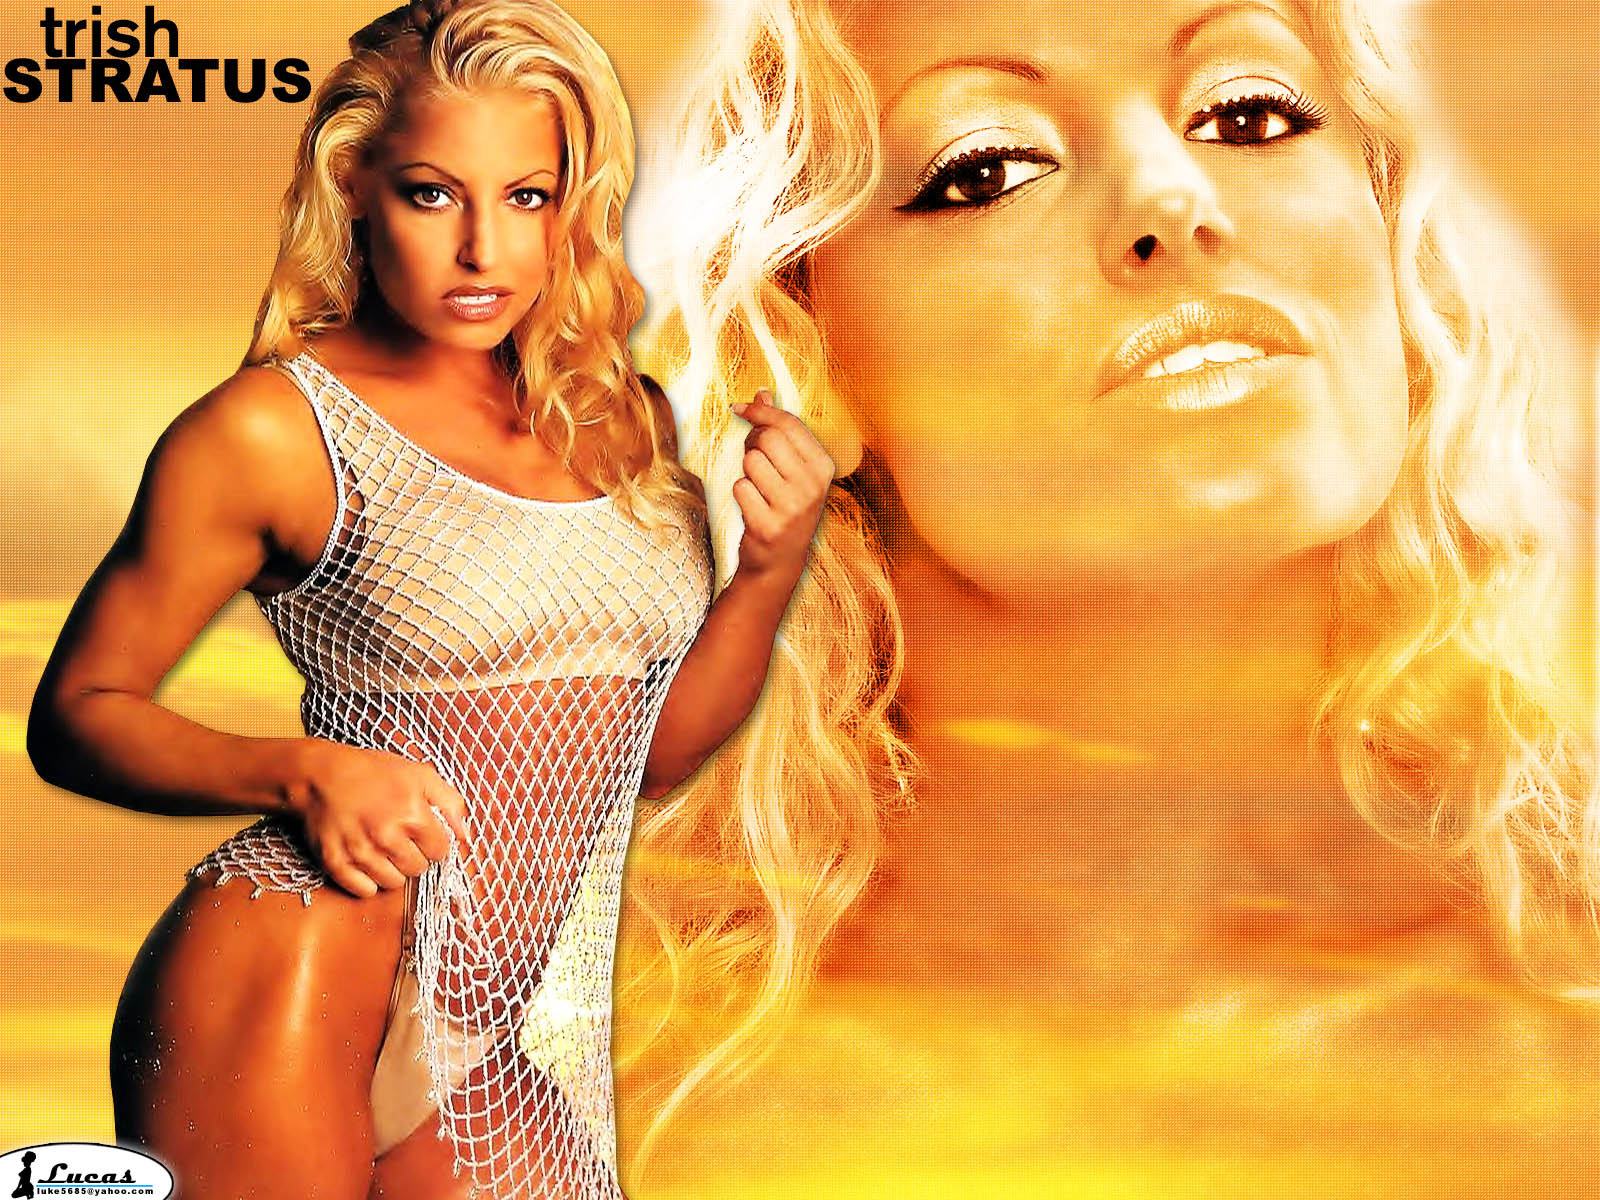 You are viewing the Trish Stratus wallpaper named Trish stratus 14.